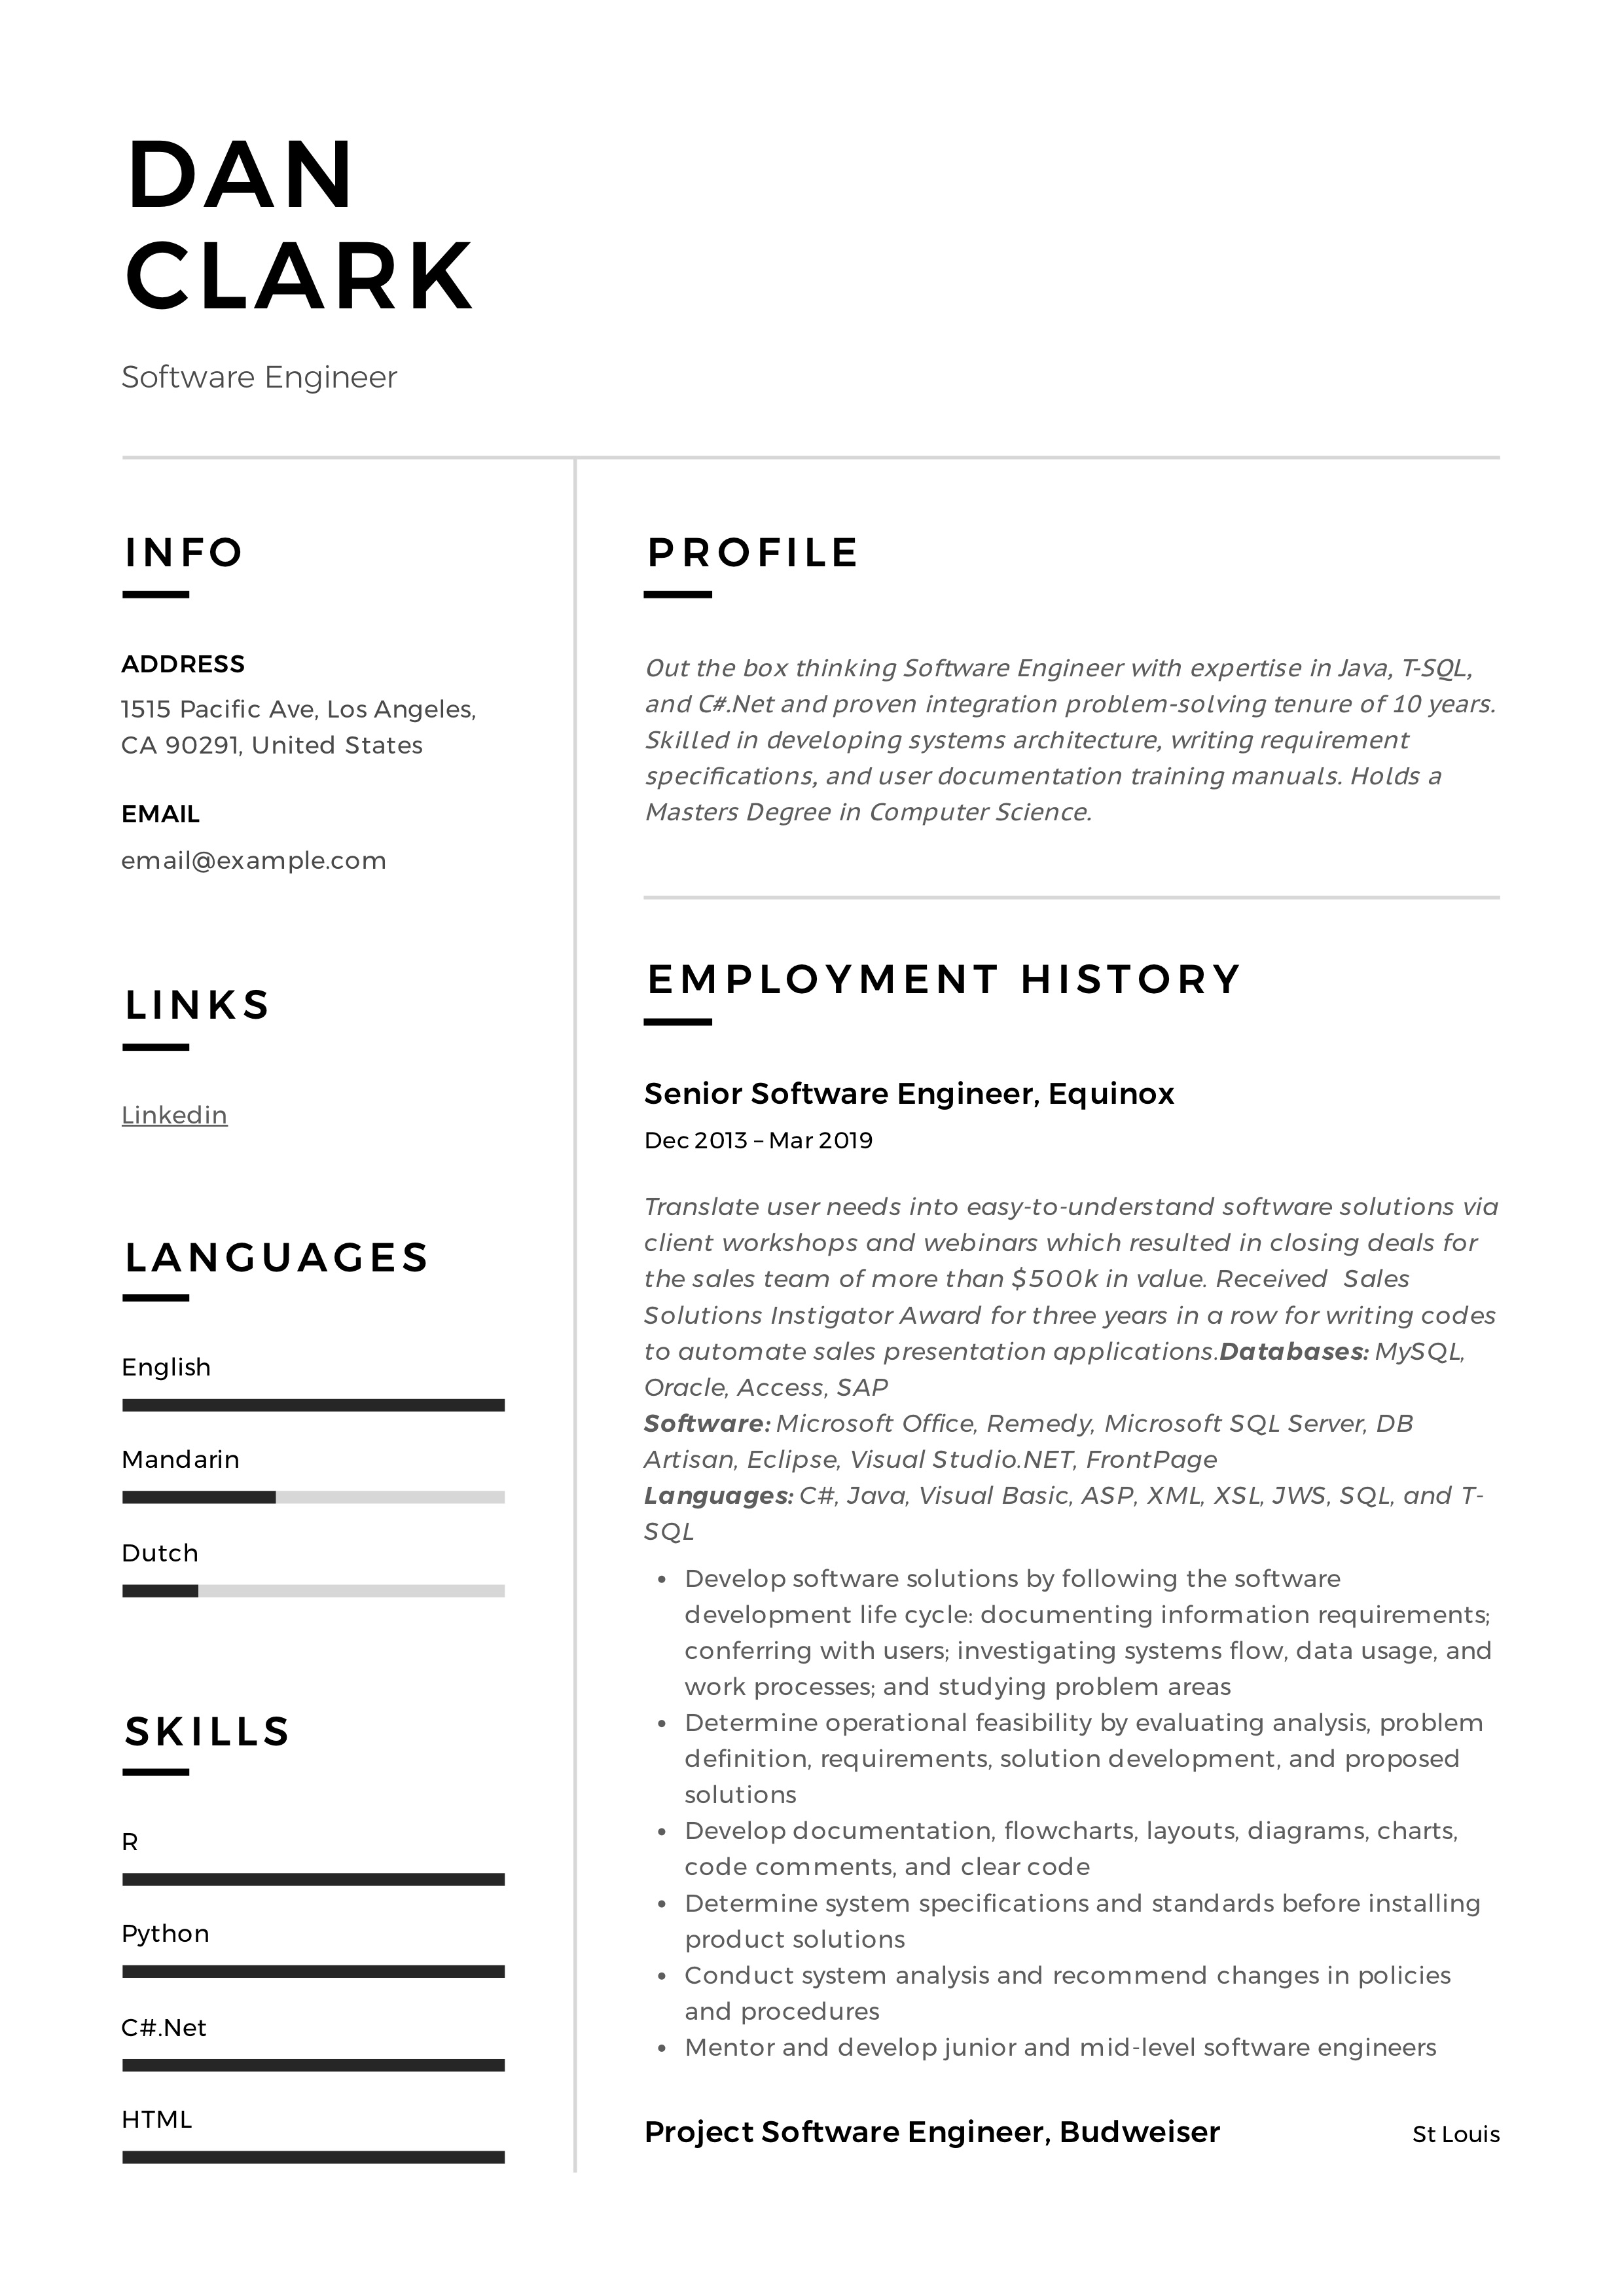 Software Engineer Resume Writing Guide 12 Samples Pdf 2020